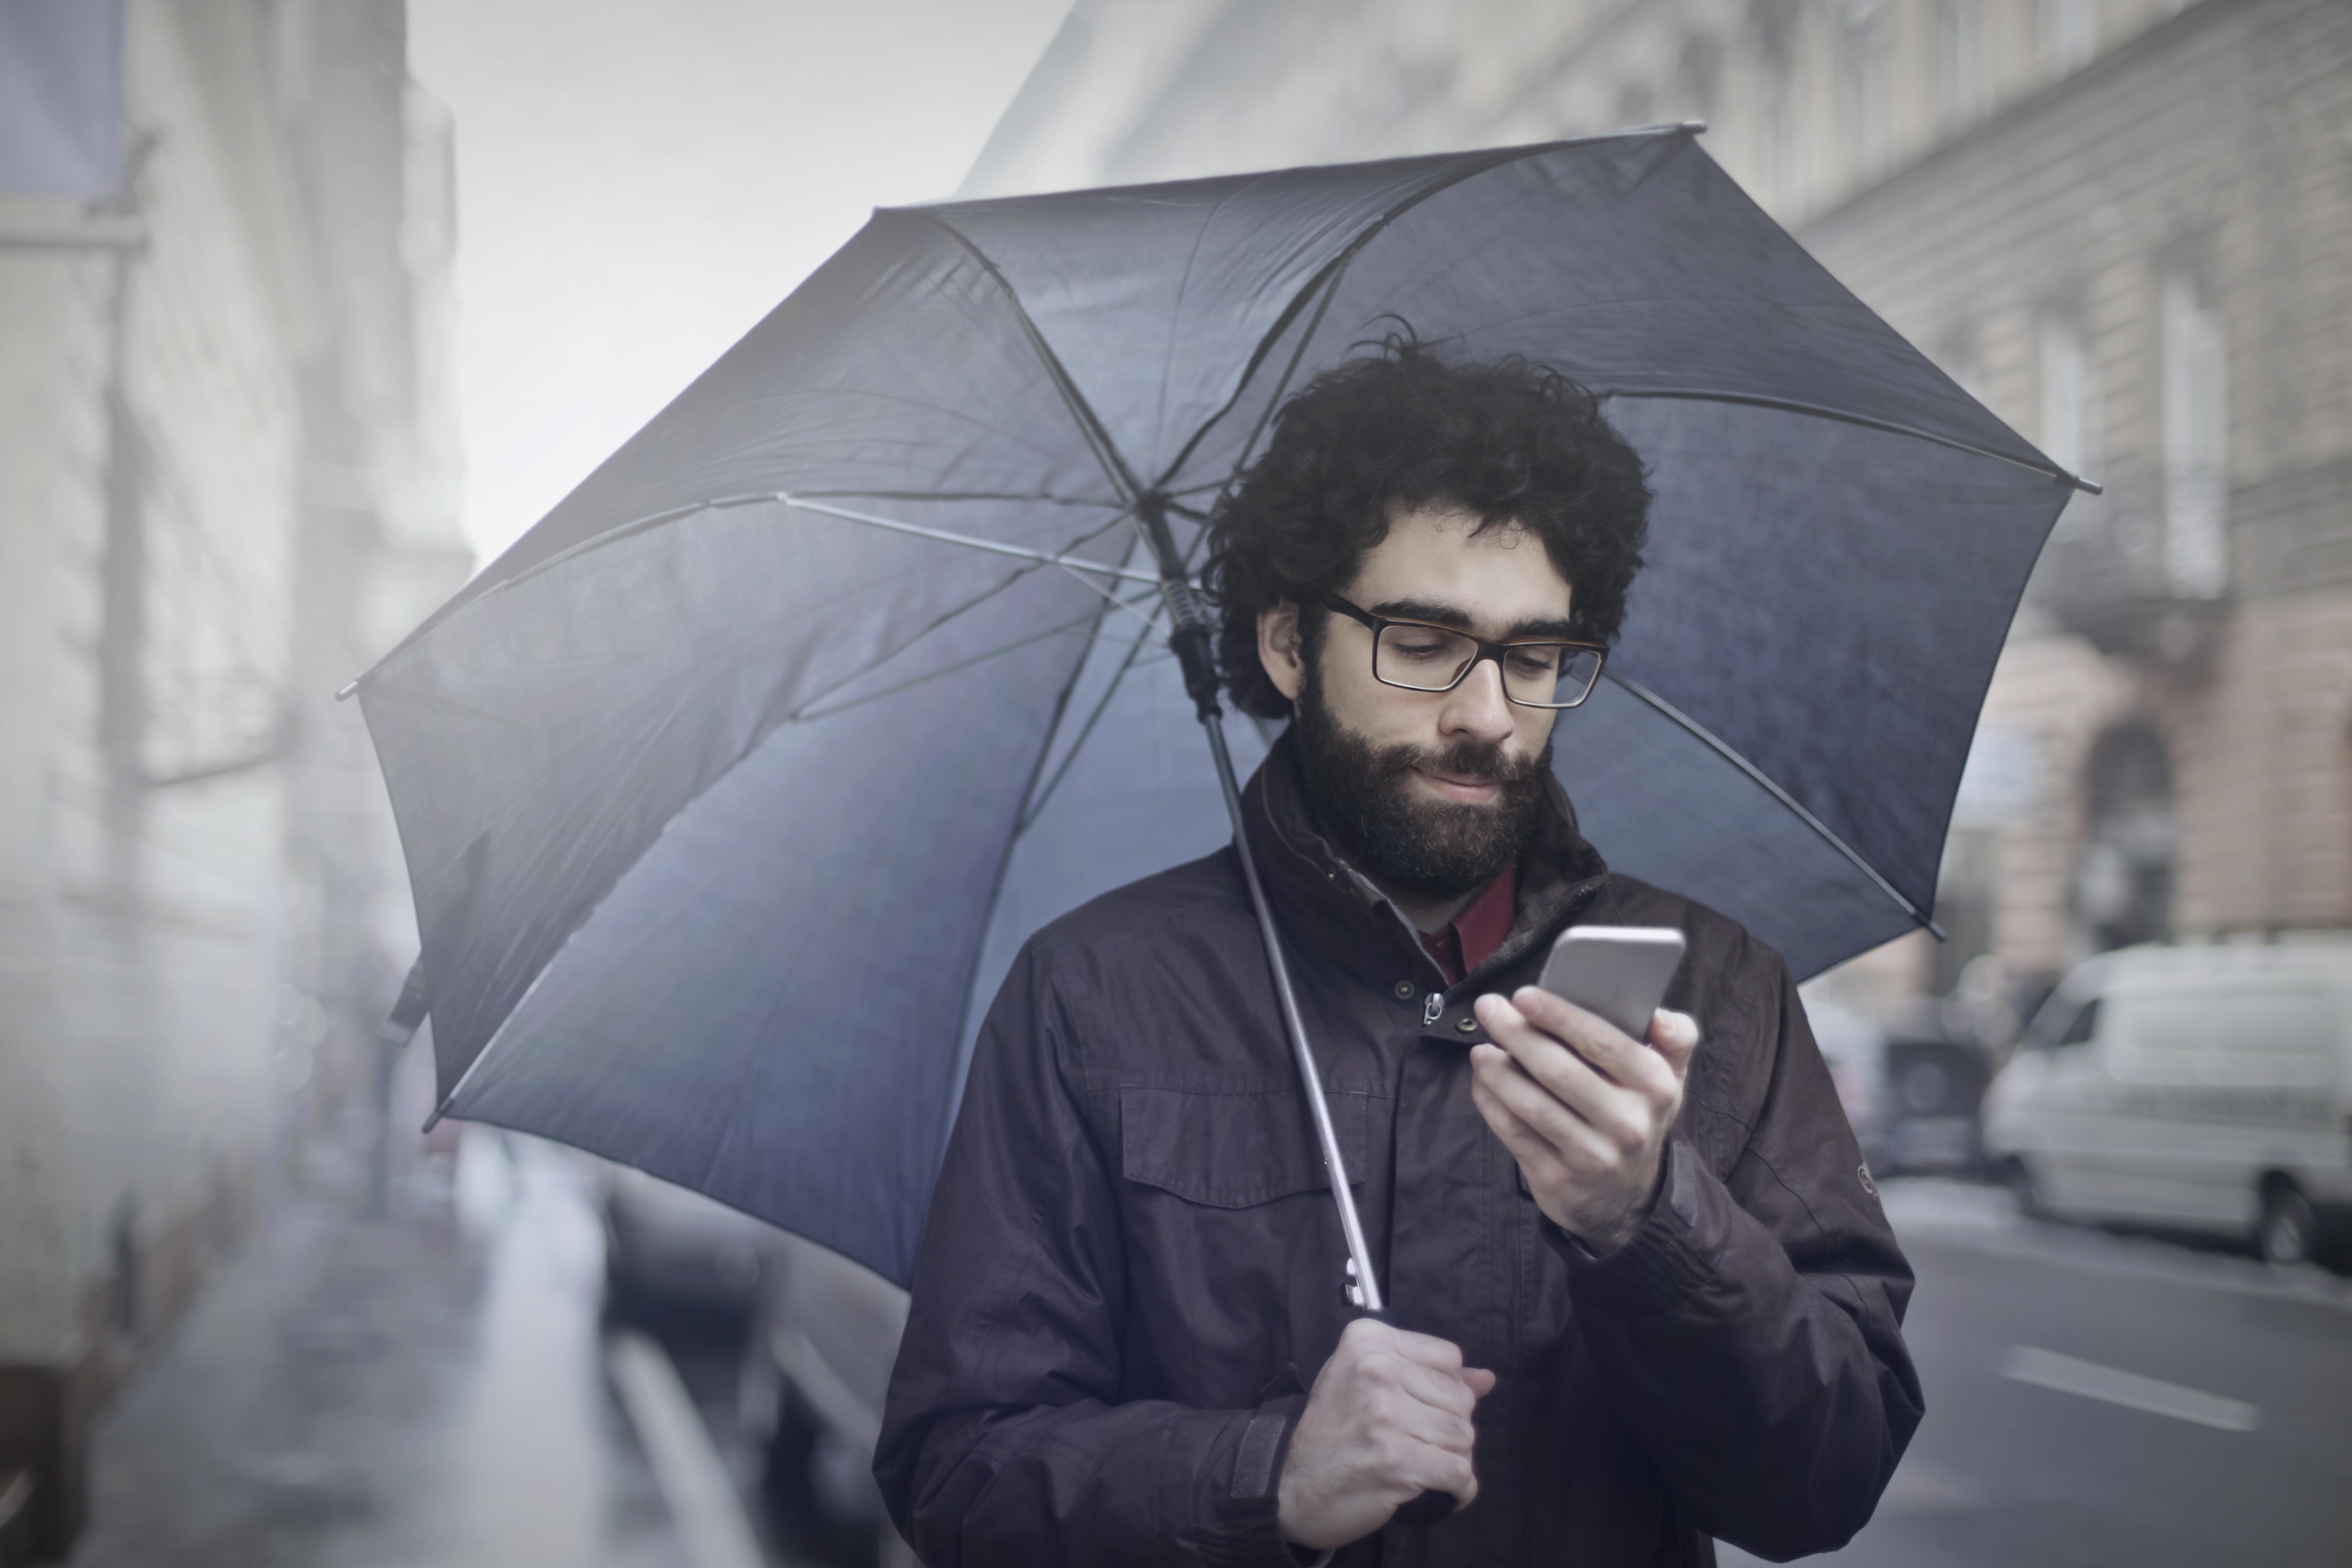 Lawsuit forces The Weather Channel app to disclose location use | Engadget